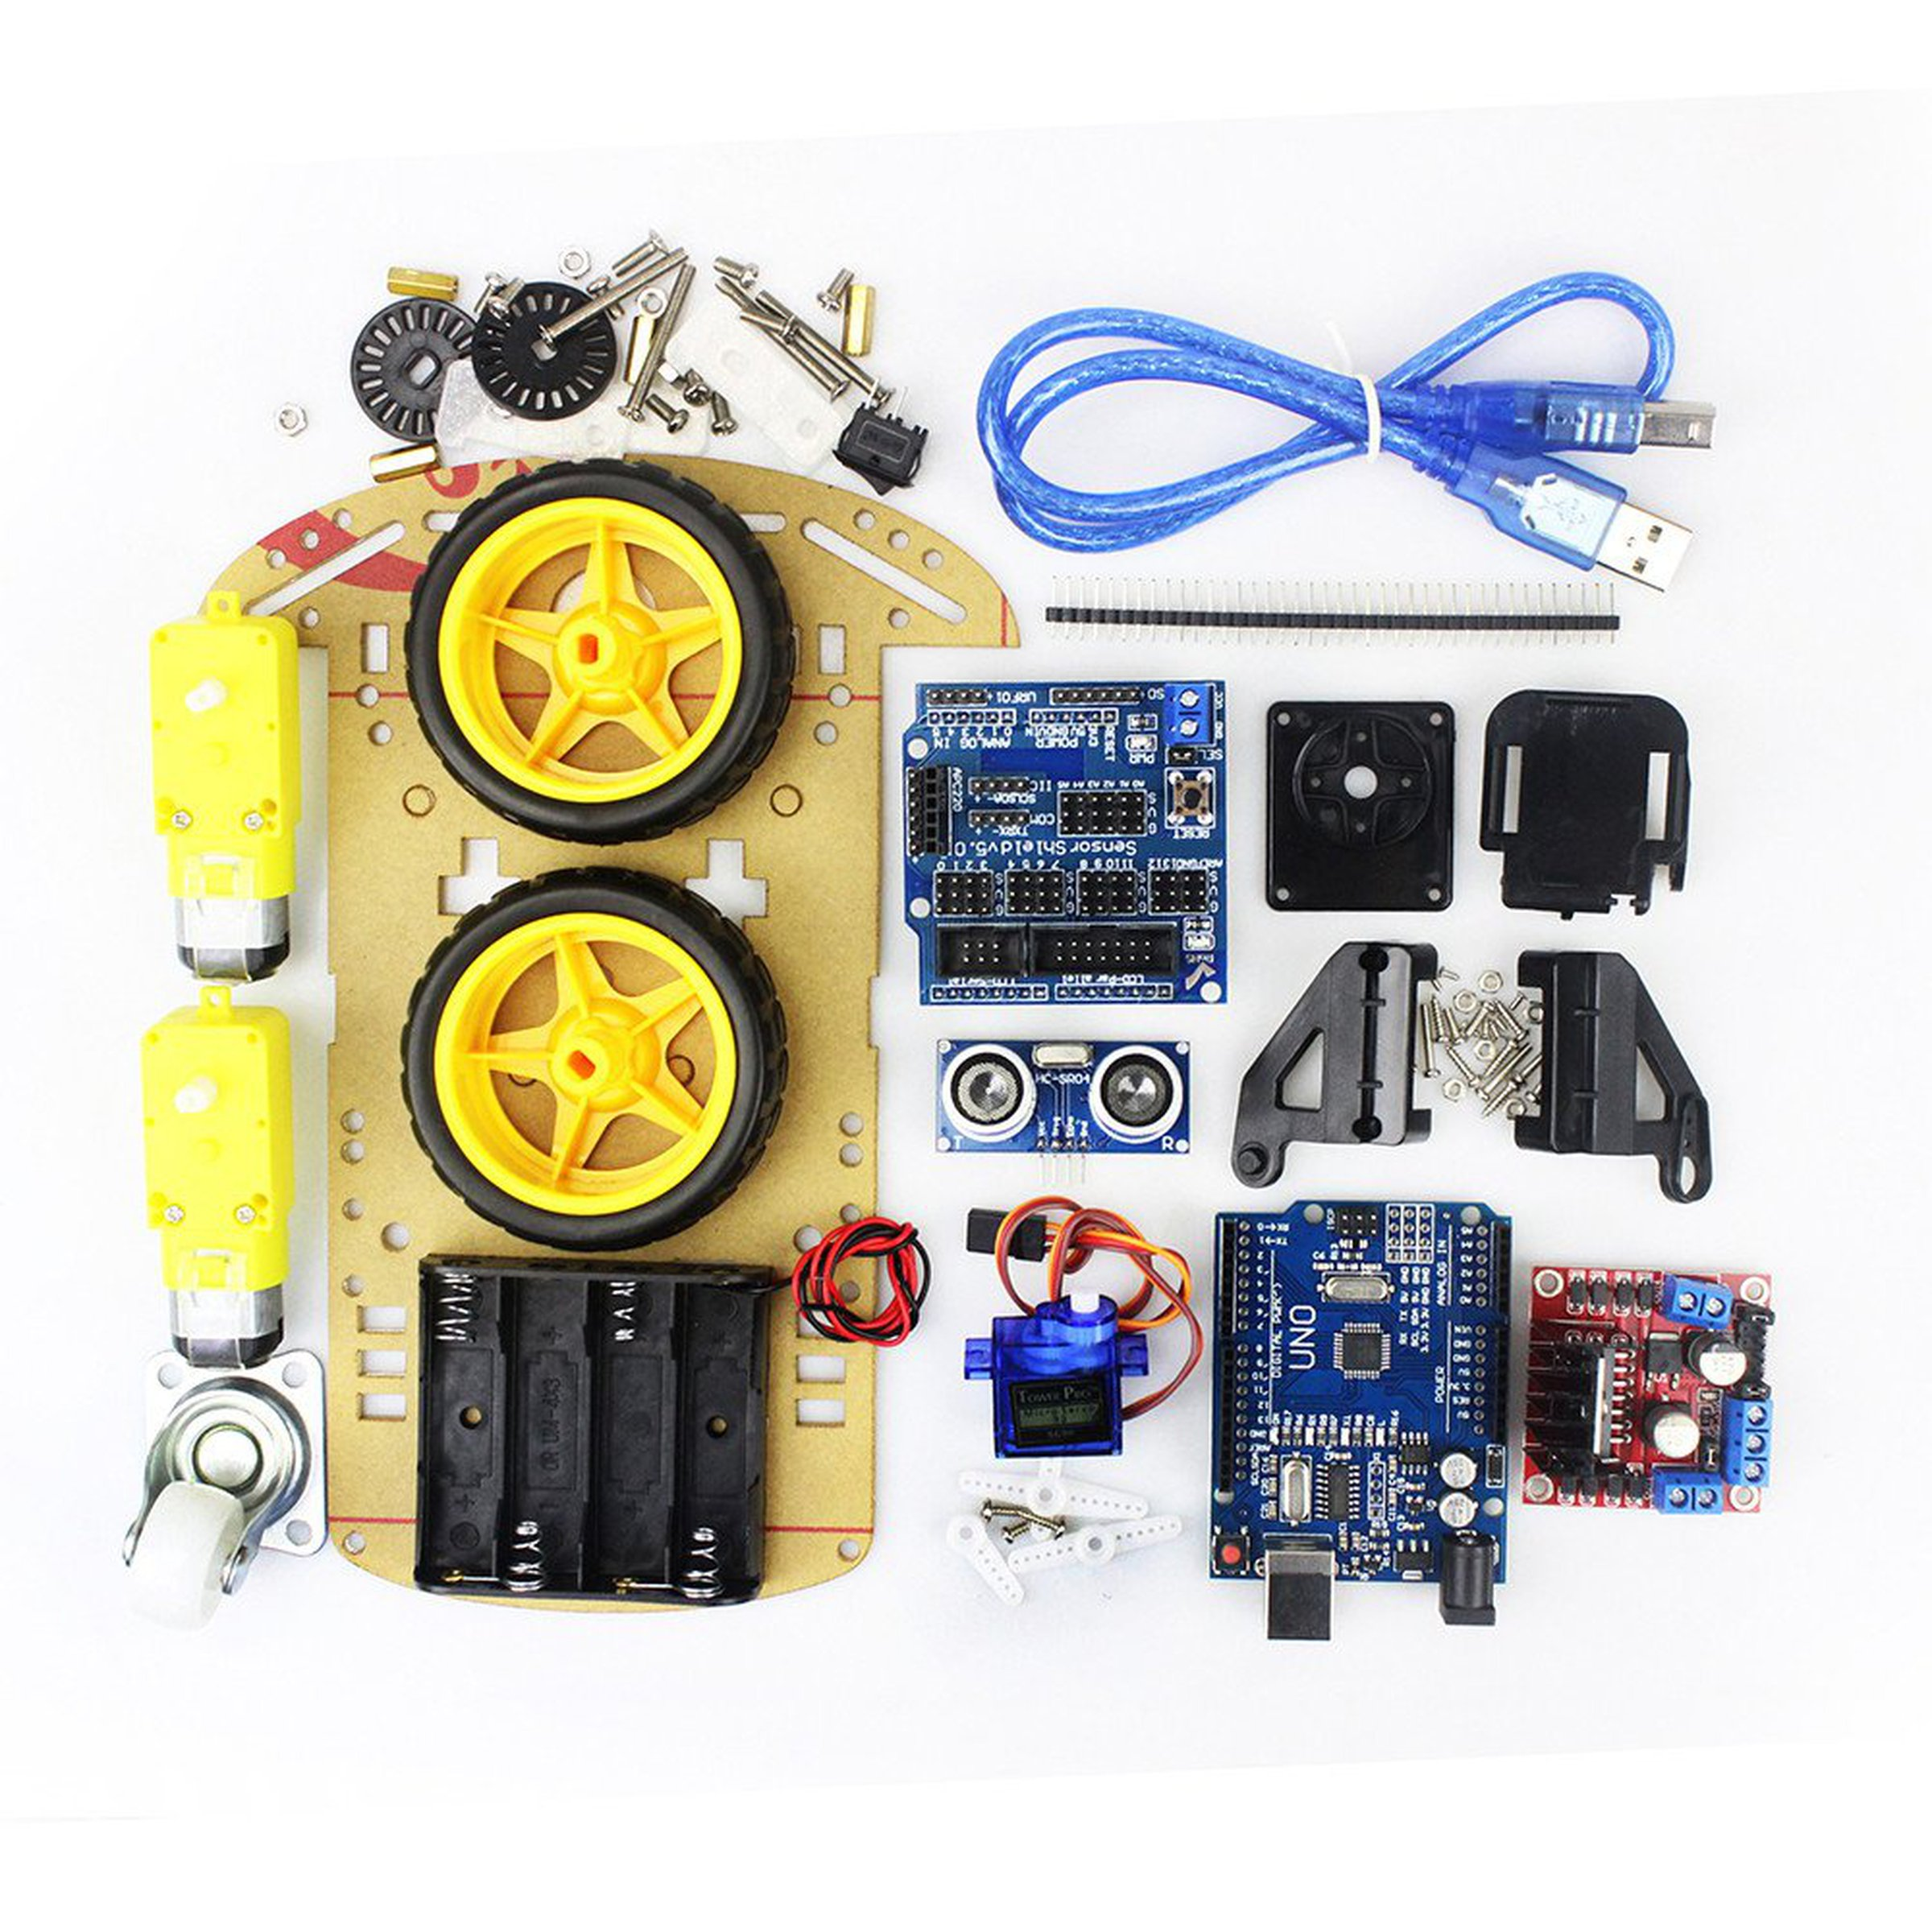 Arduino diy smart robot car kit from robotart on tindie